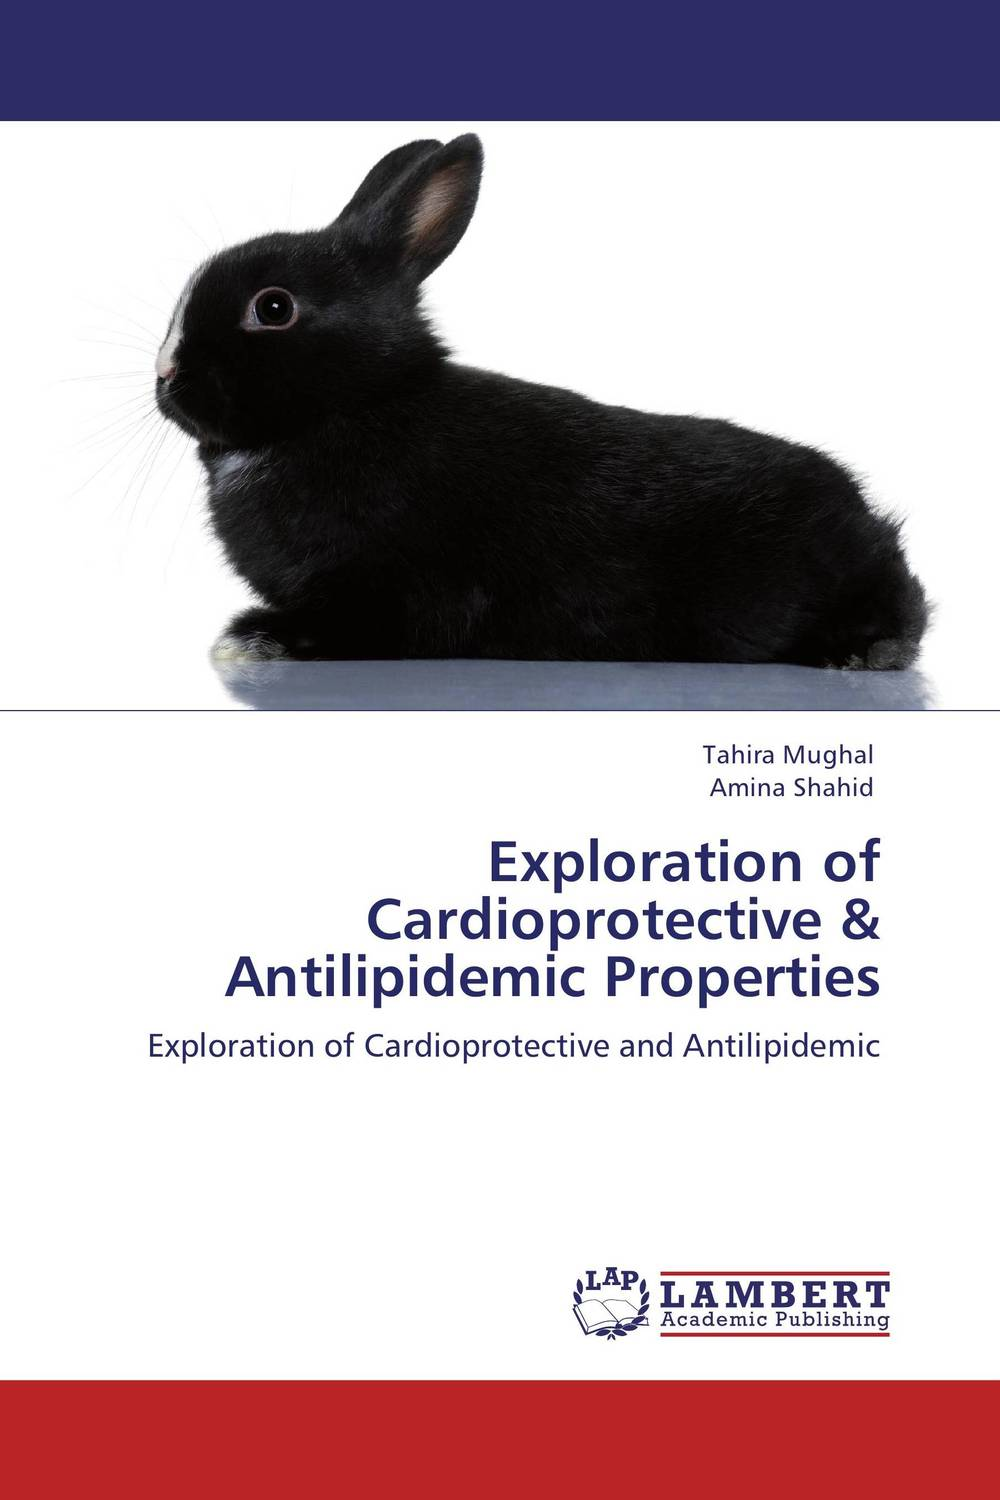 Exploration of Cardioprotective & Antilipidemic Properties wound healing properties of some indigenous ghanaian plants